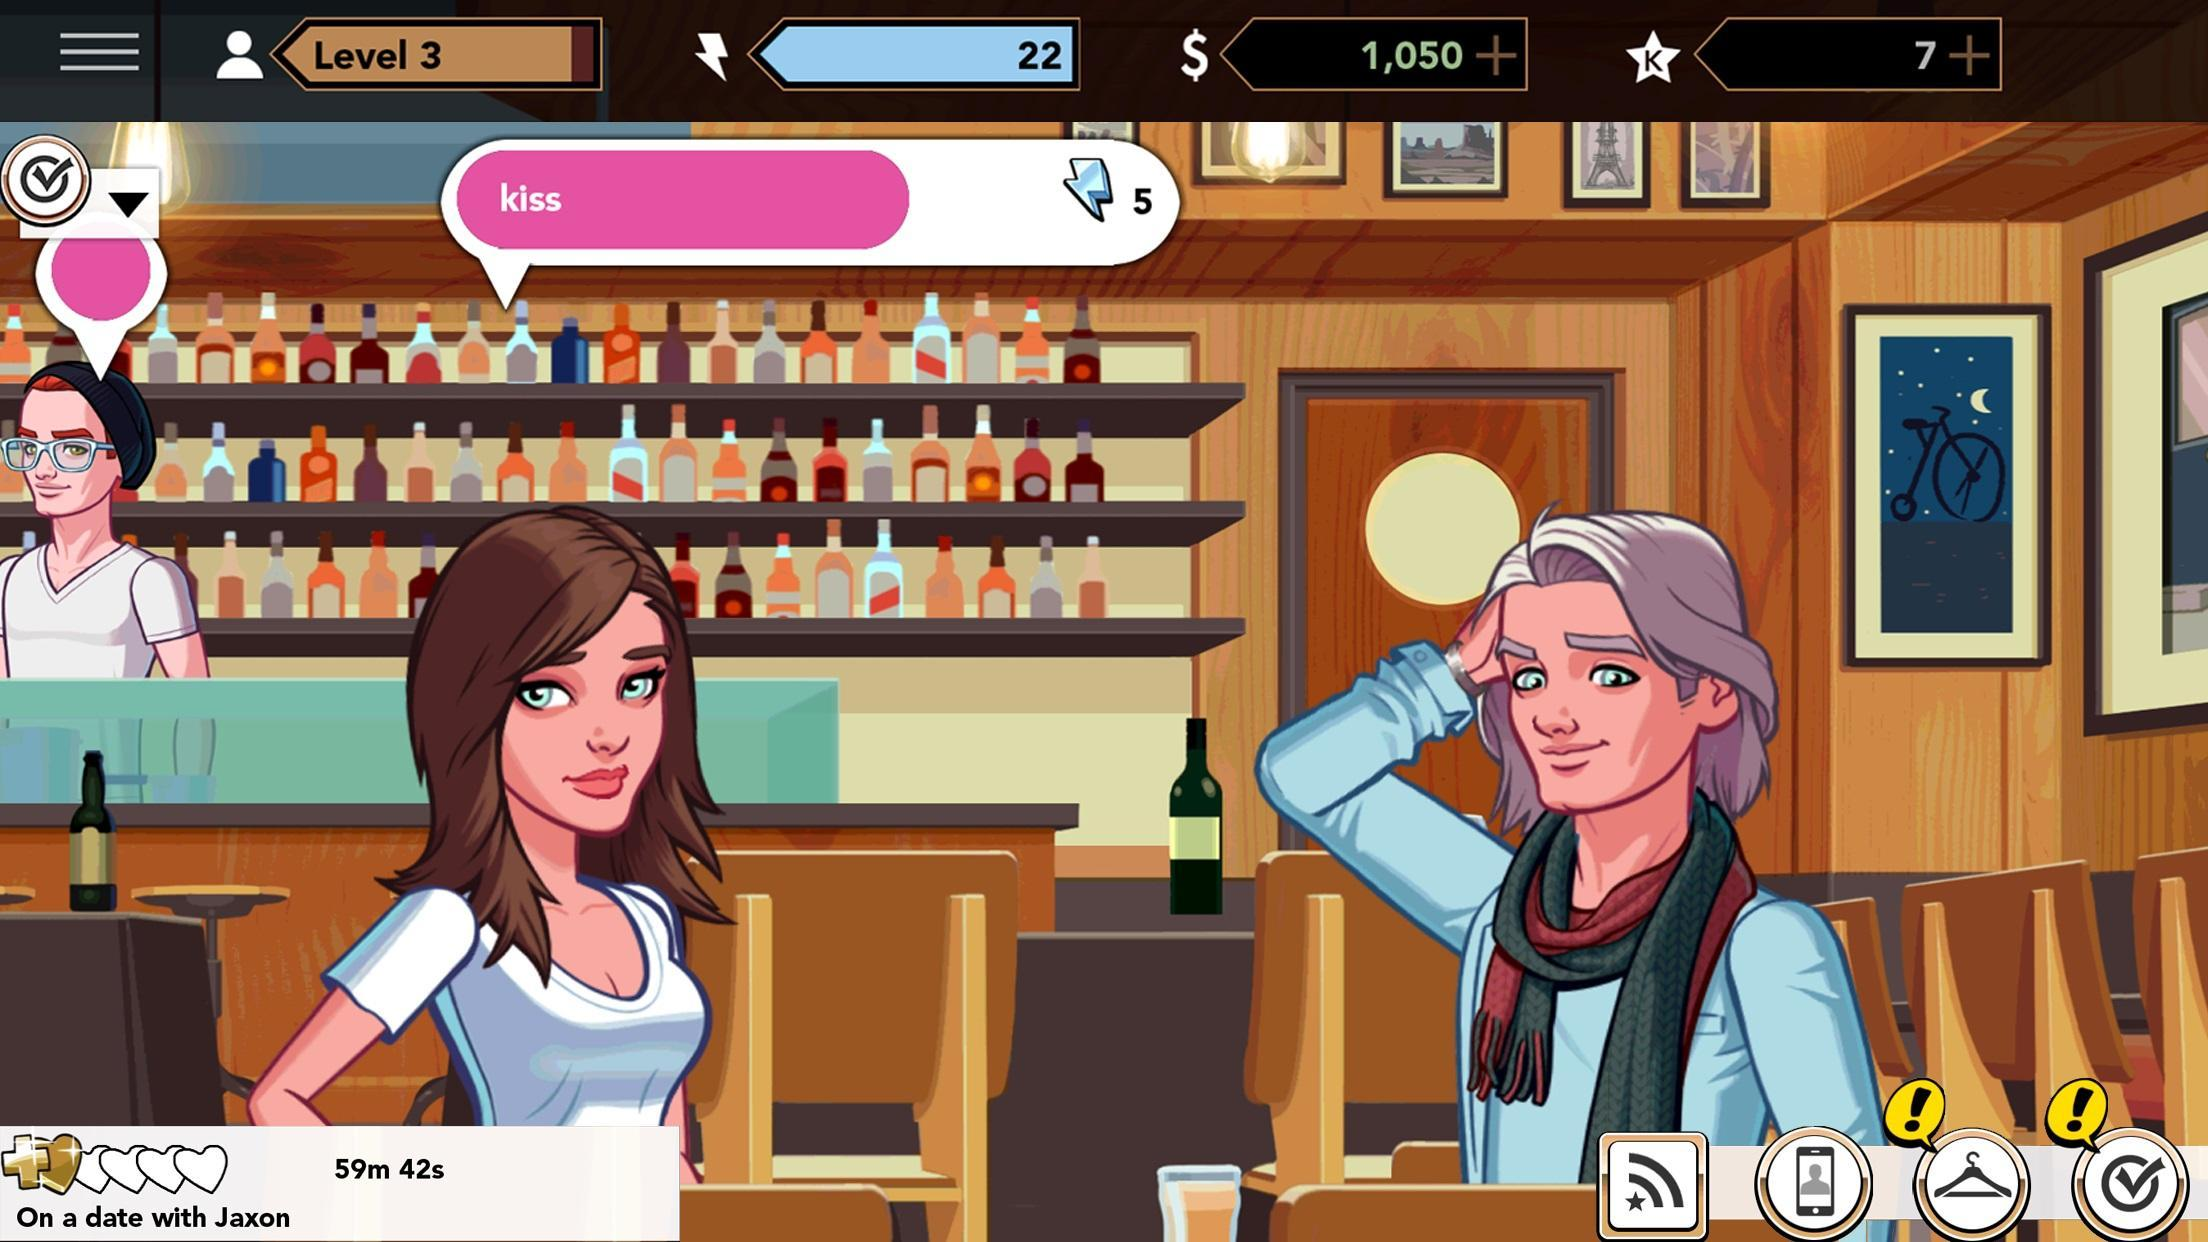 KIM KARDASHIAN: HOLLYWOOD 11.4.1 Screenshot 10